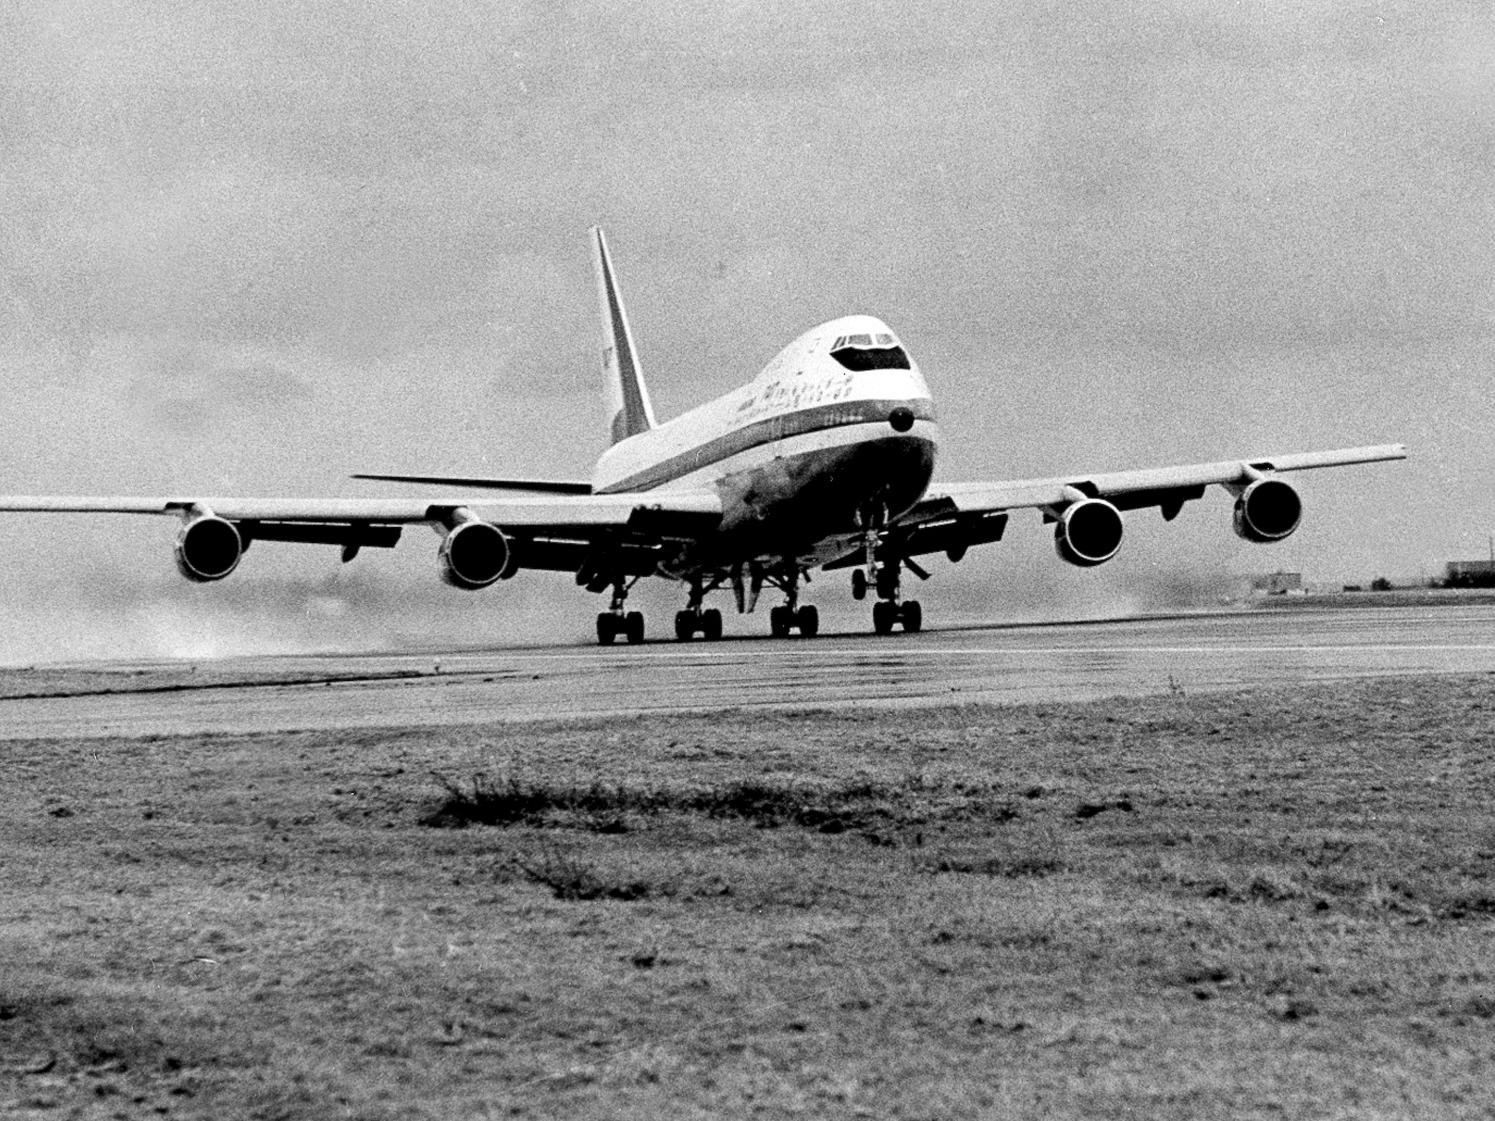 The Boeing 747 jumbo jet changed air travel with this momentous event 47 years ago today